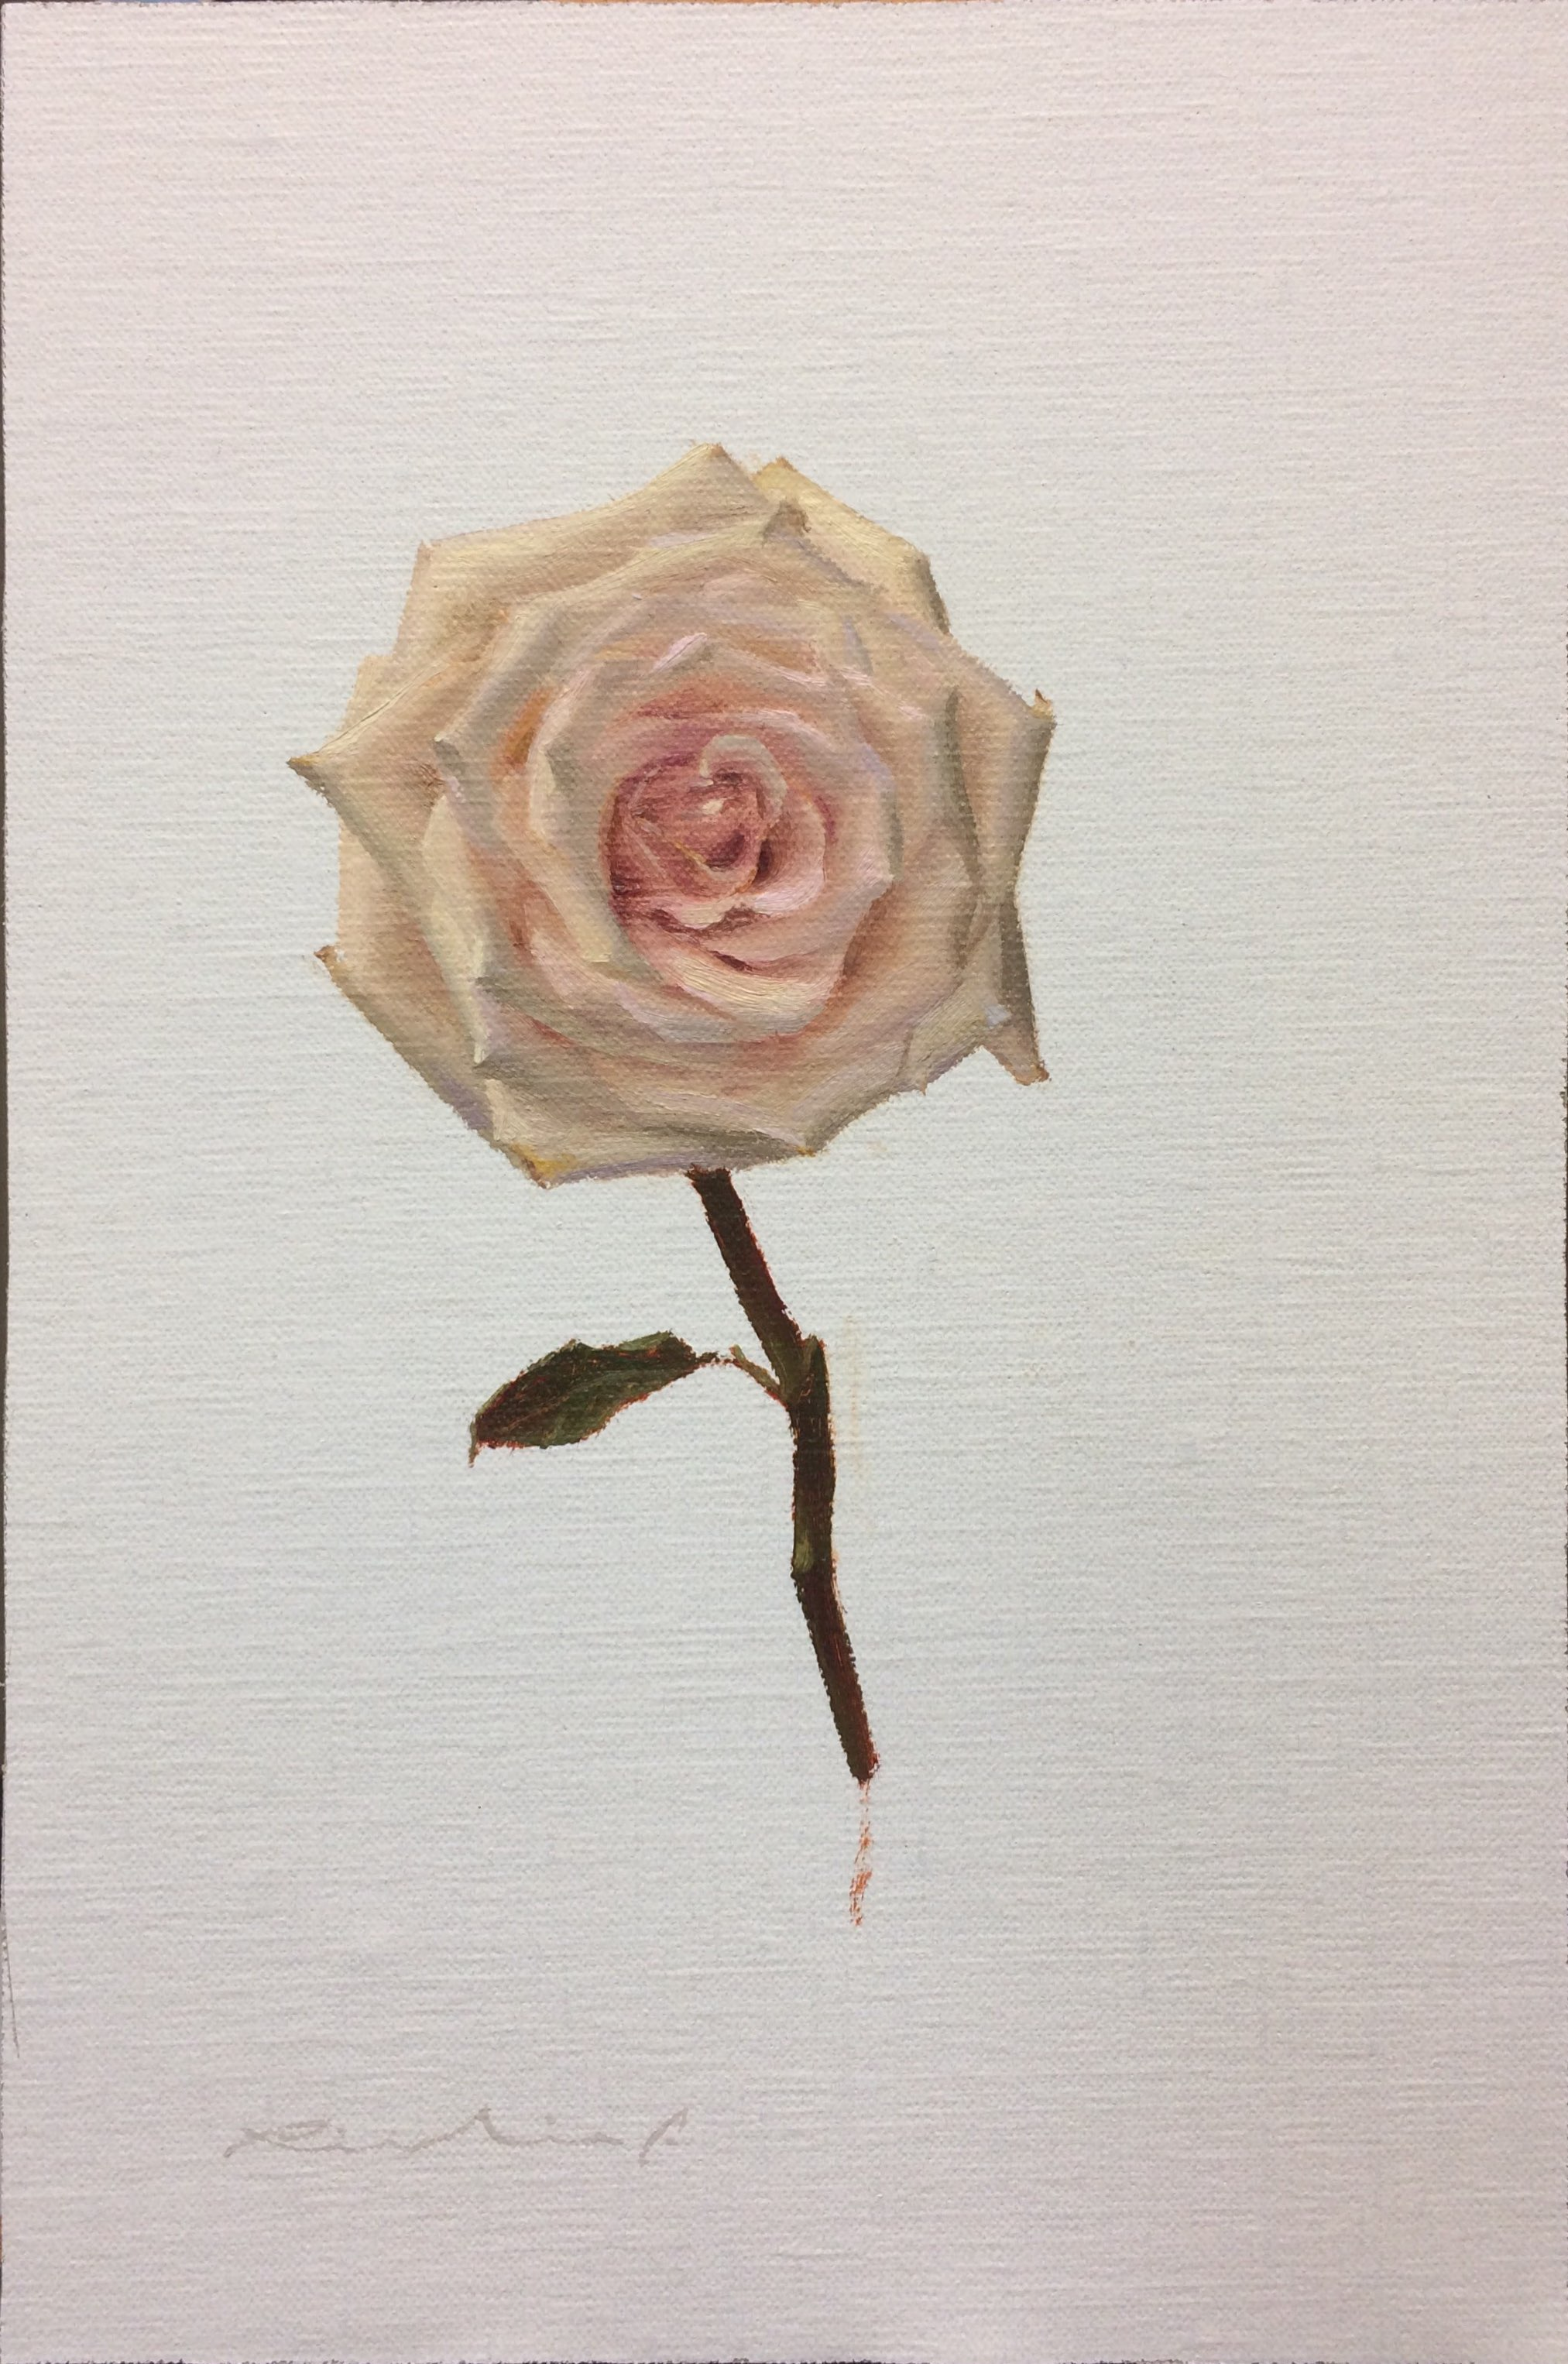 """Bed of Roses 7""  $650.00  8 x 12 inches 